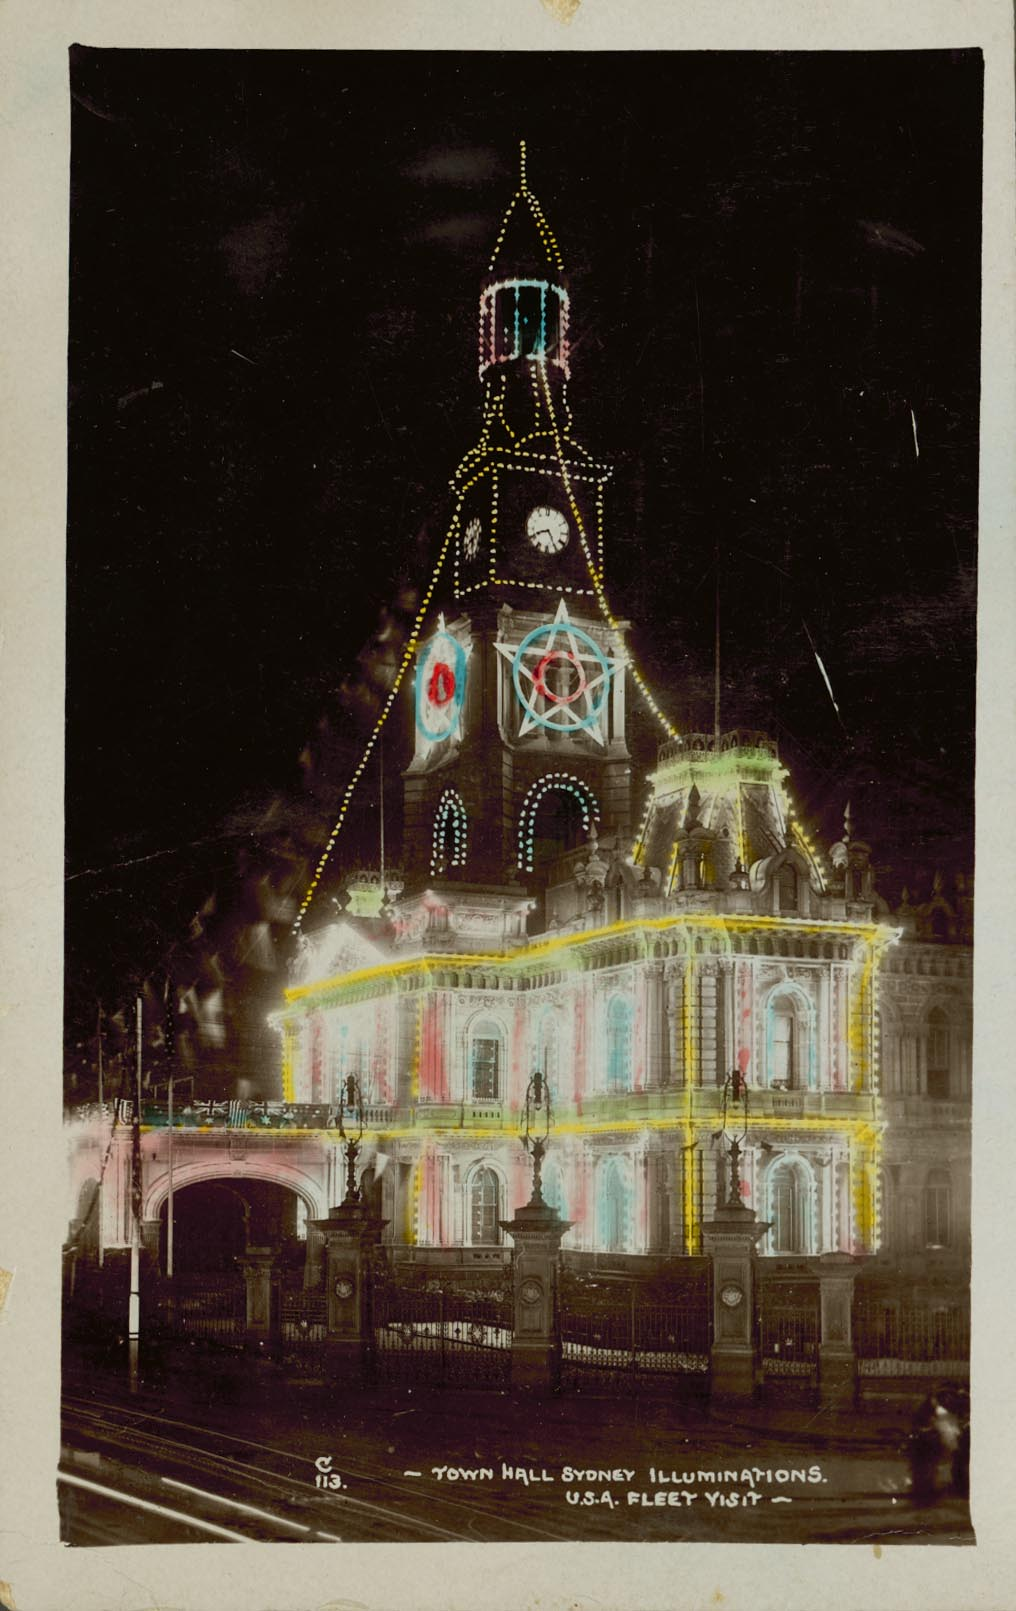 Sydney Town Hall Illuminations during the USA Fleet visit